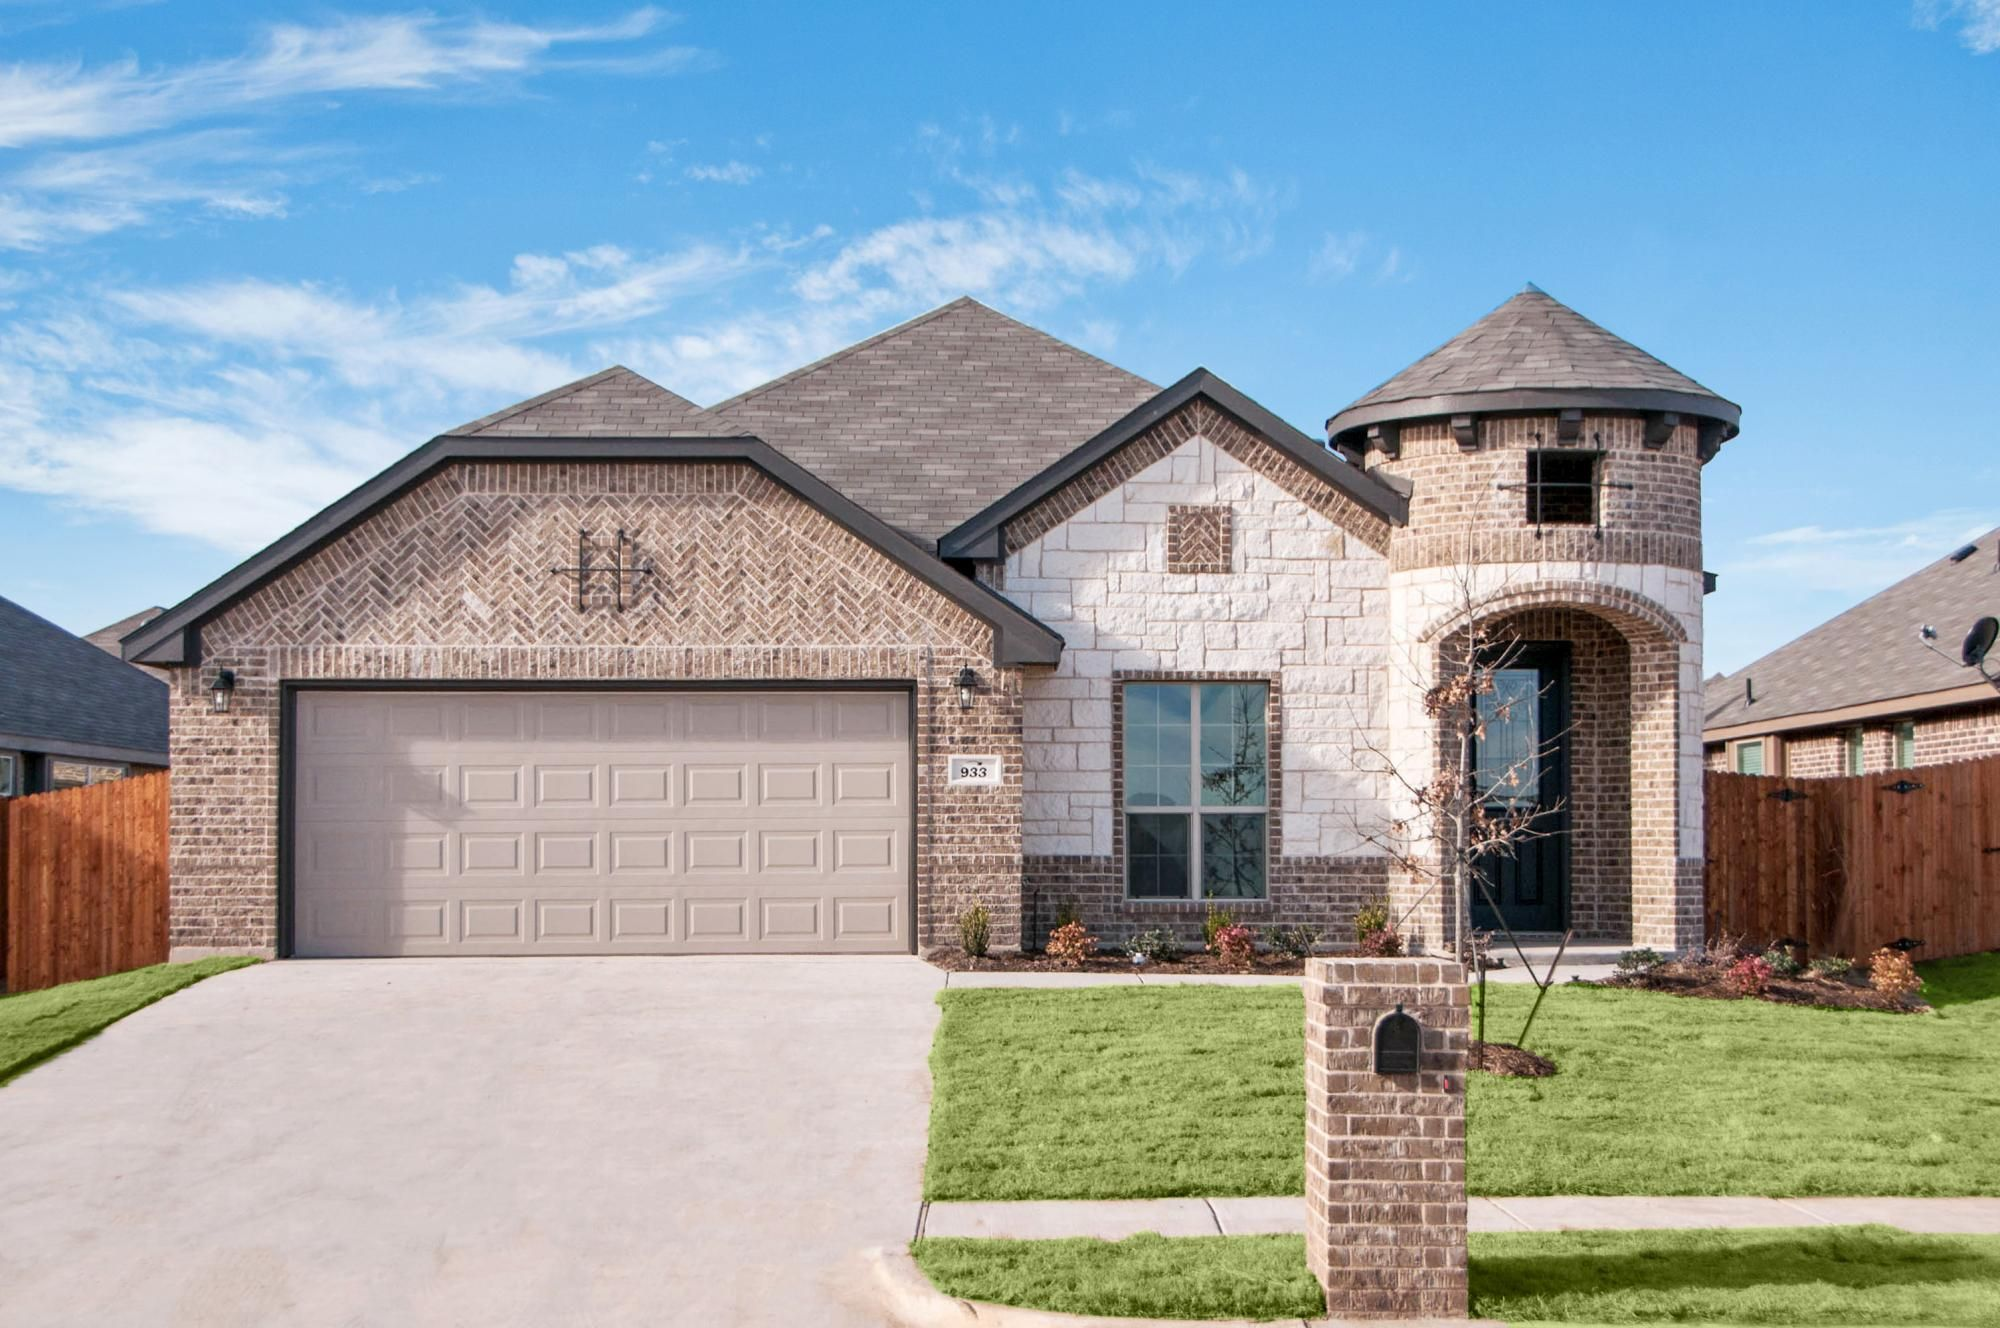 Brown Brick With Dark Trim And White Stone House Exterior Brown Brick House Styles